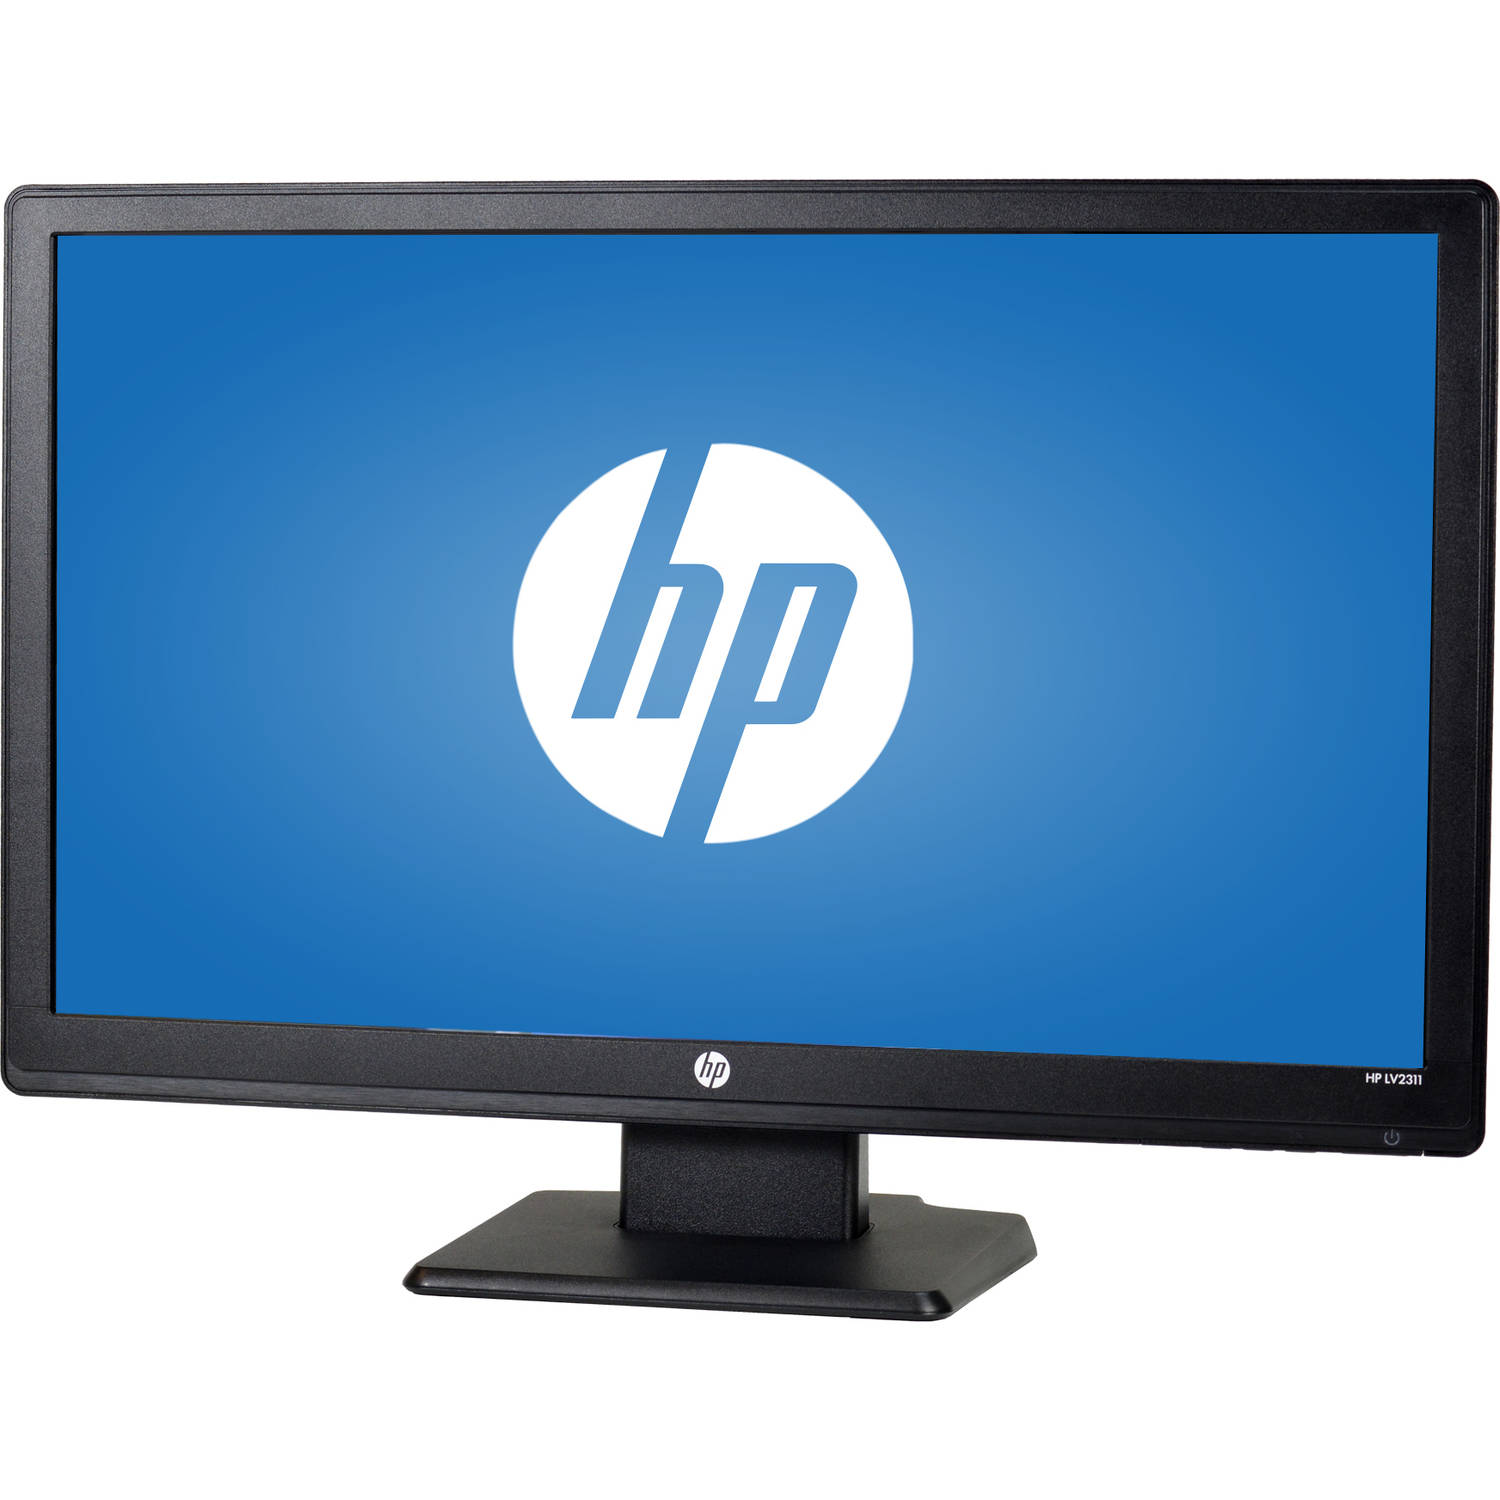 "Refurbished HP 23"" LCD Widescreen Monitor (LV2311 Black)"